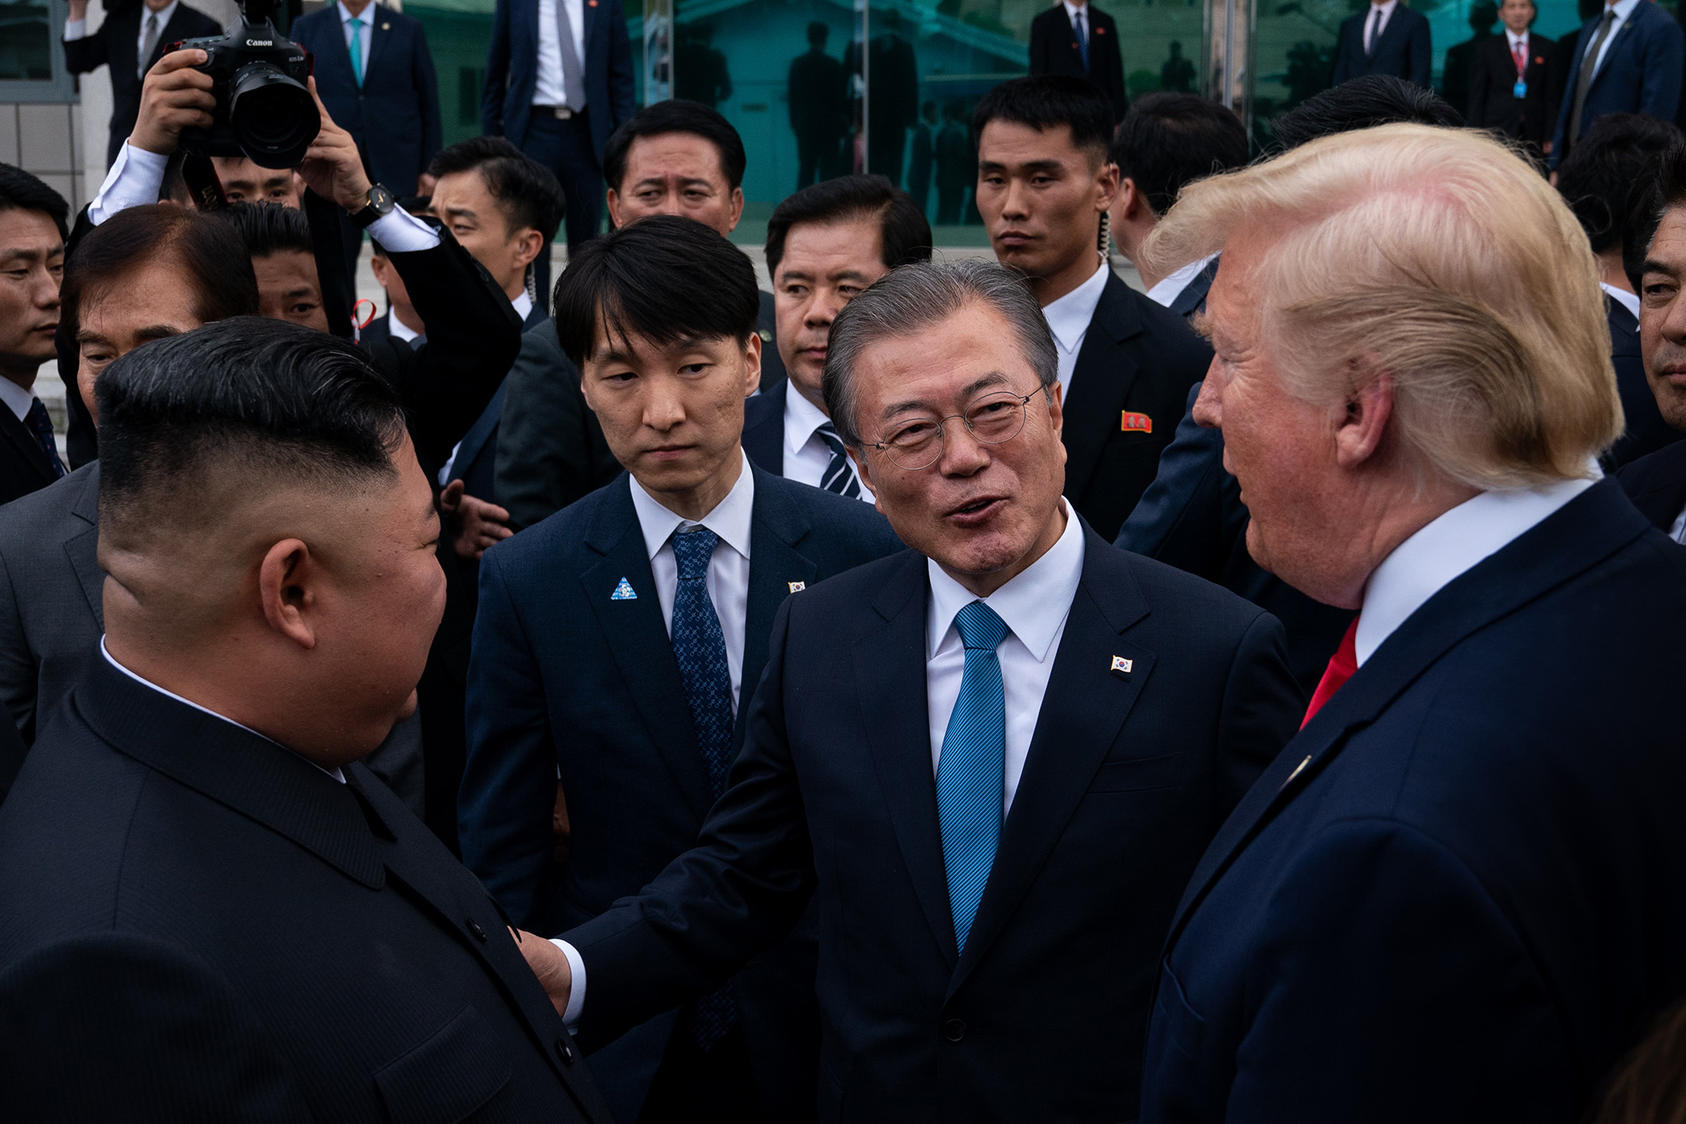 North Korea's Kim Jong Un, South Korean President Moon Jae-in and President Donald Trump met at the Korean demilitarized zone in June 2019. North Korea is showing frustration at not winning its goals through diplomacy. (Erin Schaff/The New York Times)